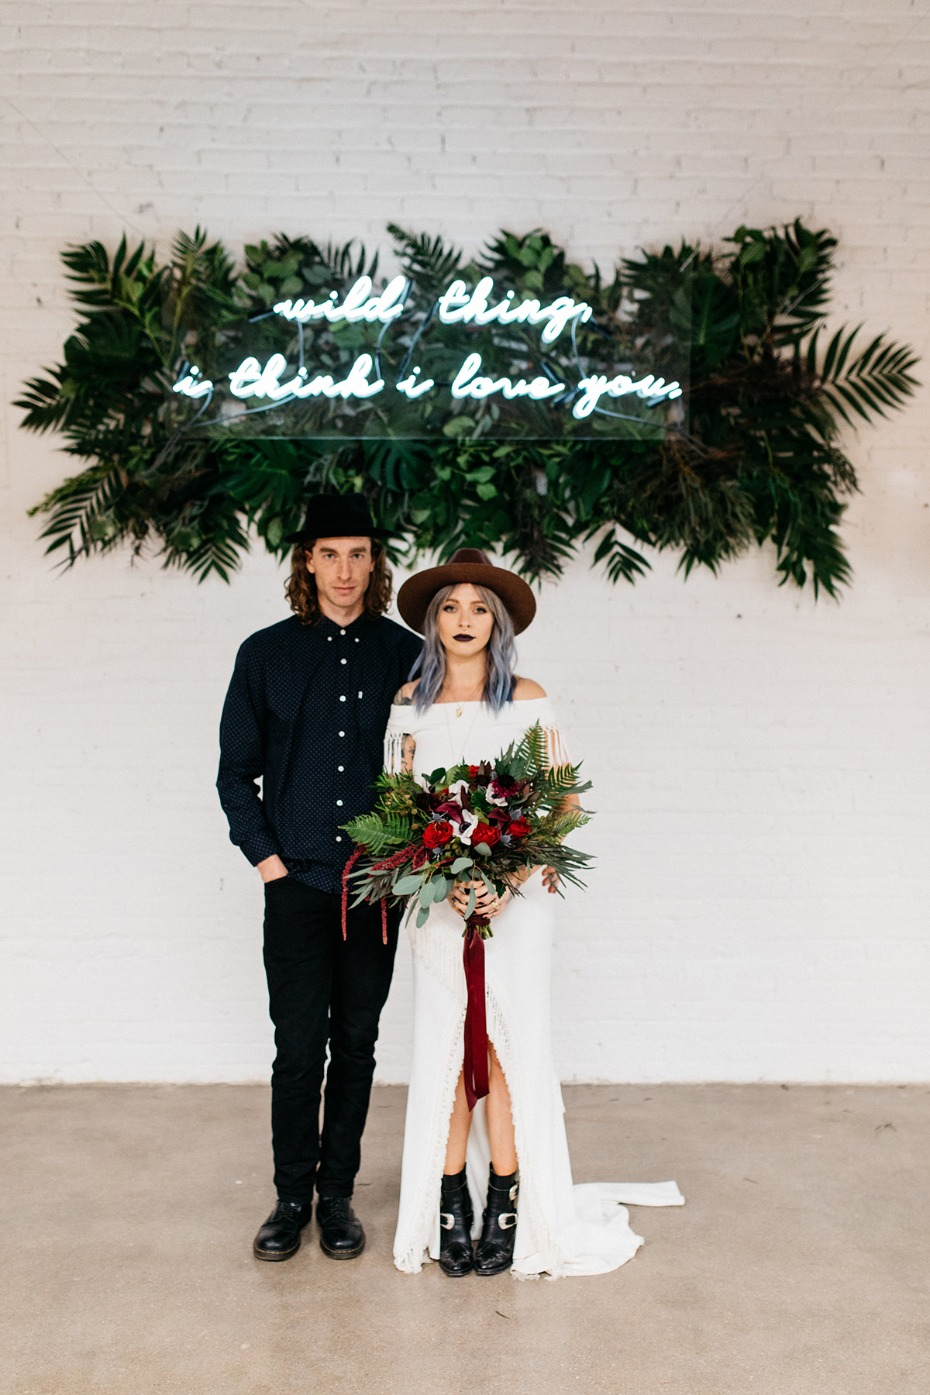 Edgy glam wedding ideas to steal right now